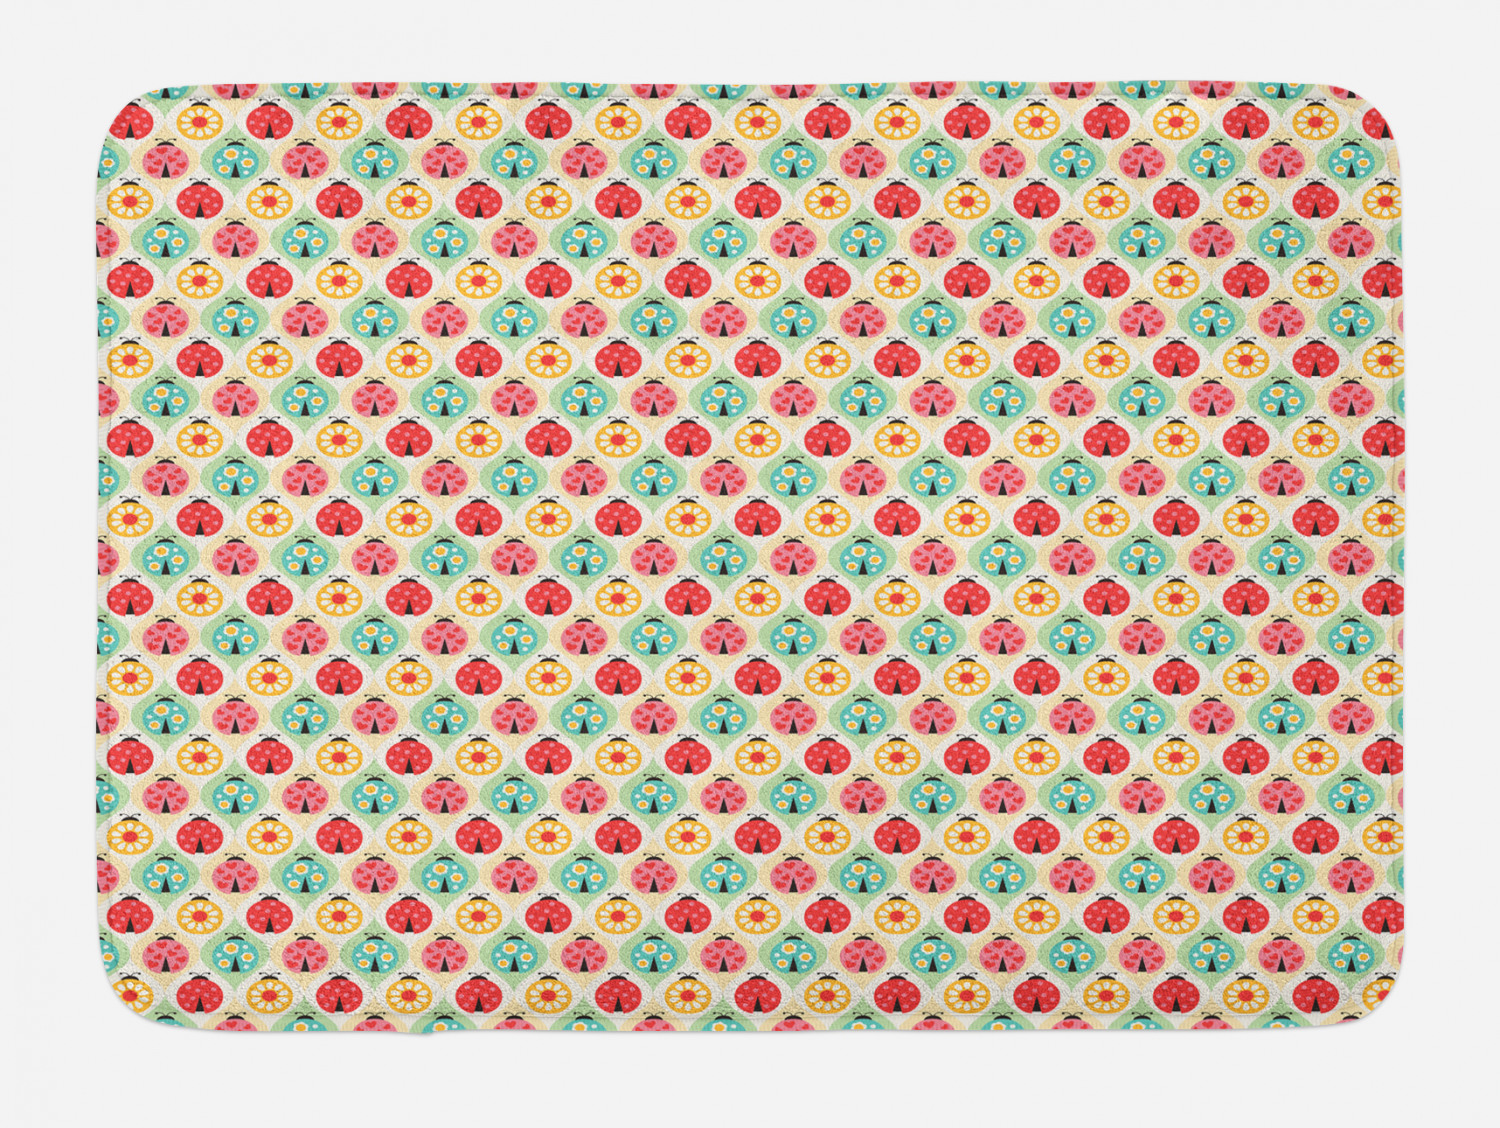 Ladybug Bath Mat Cartoon Ladybug Insect Pattern Ornamented With Floral Petal Motifs Hearts And Dots Plush Bathroom Decor Mat With Non Slip Backing 29 5 X 17 5 Multicolor By Ambesonne Walmart Com